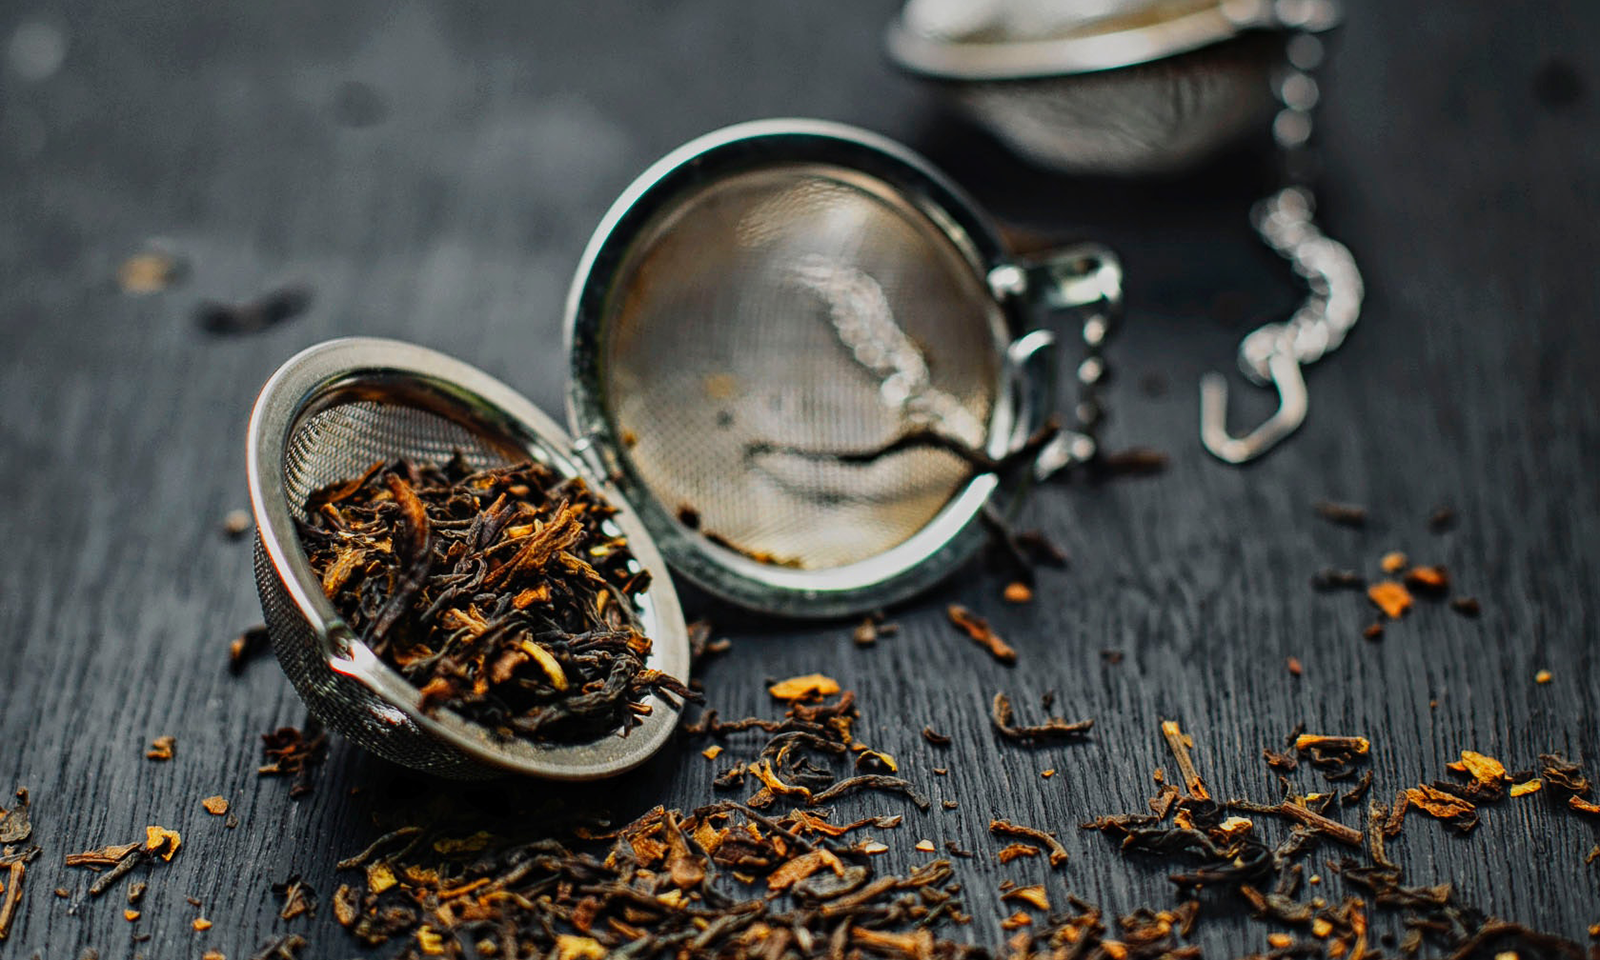 How to Brew Loose Leaf Tea: Everything You Need To Know